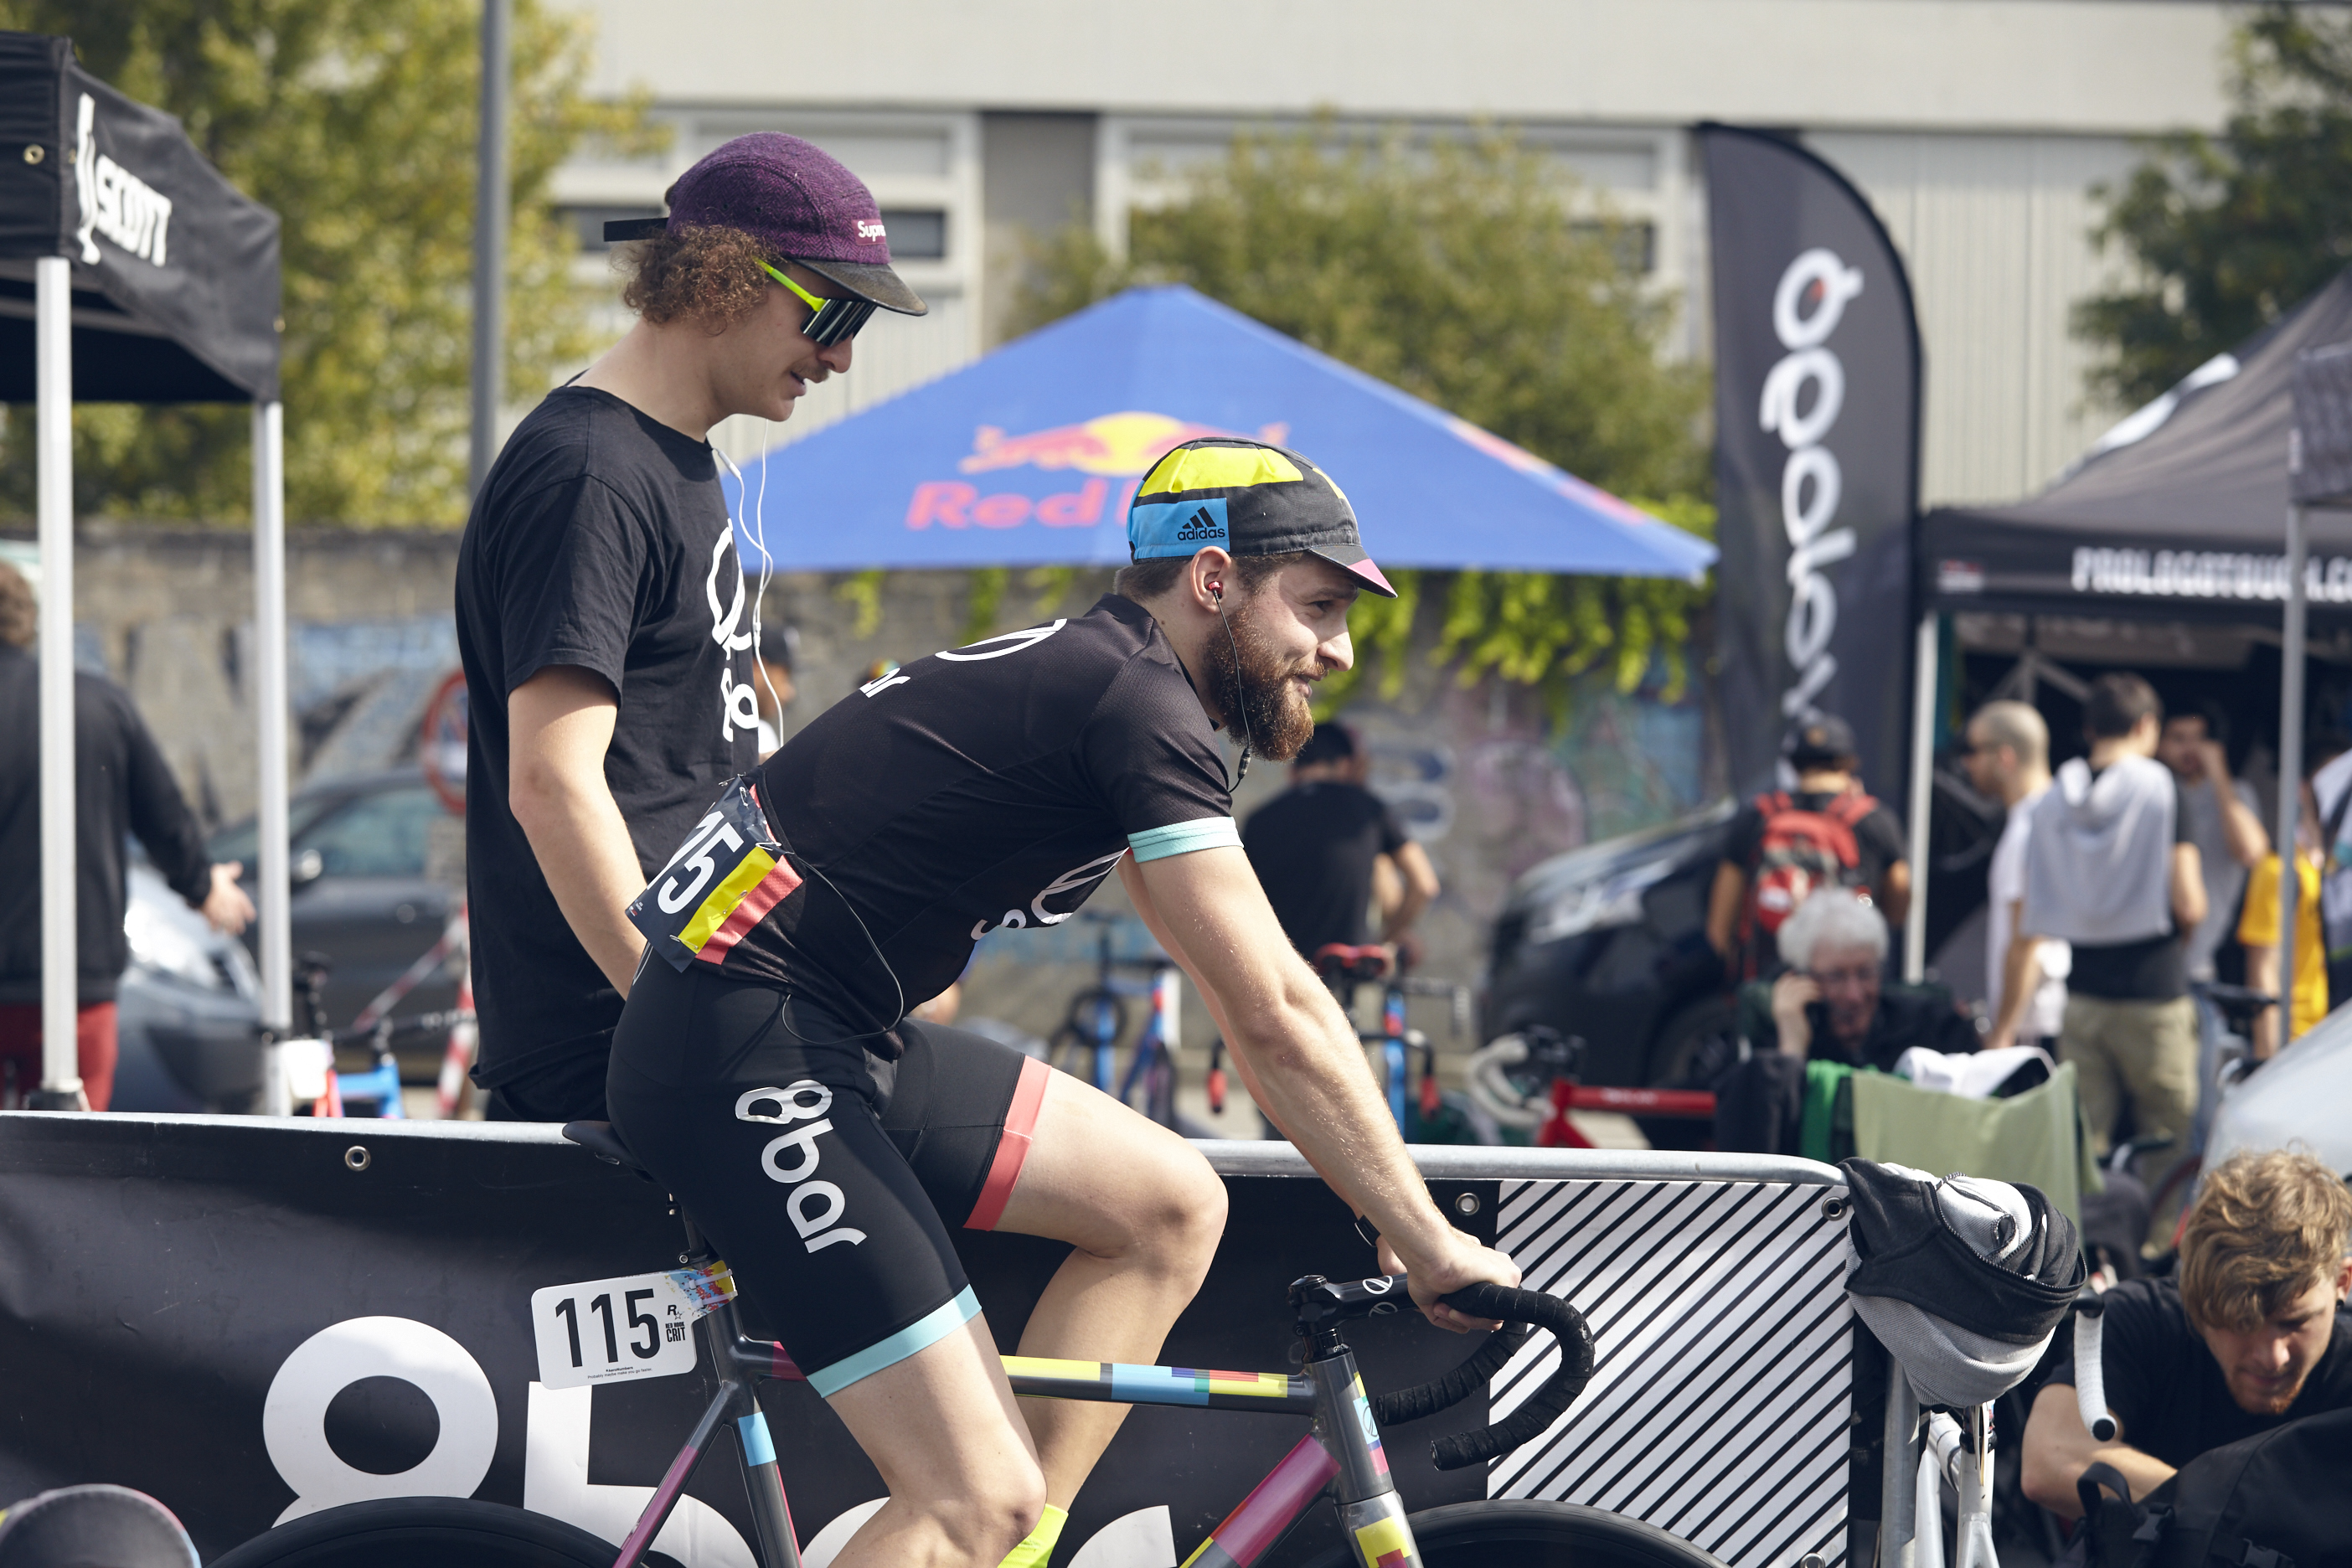 8bar rookies red hook crit milan 7673 - 8bar at Red Hook Criterium Milan 2015